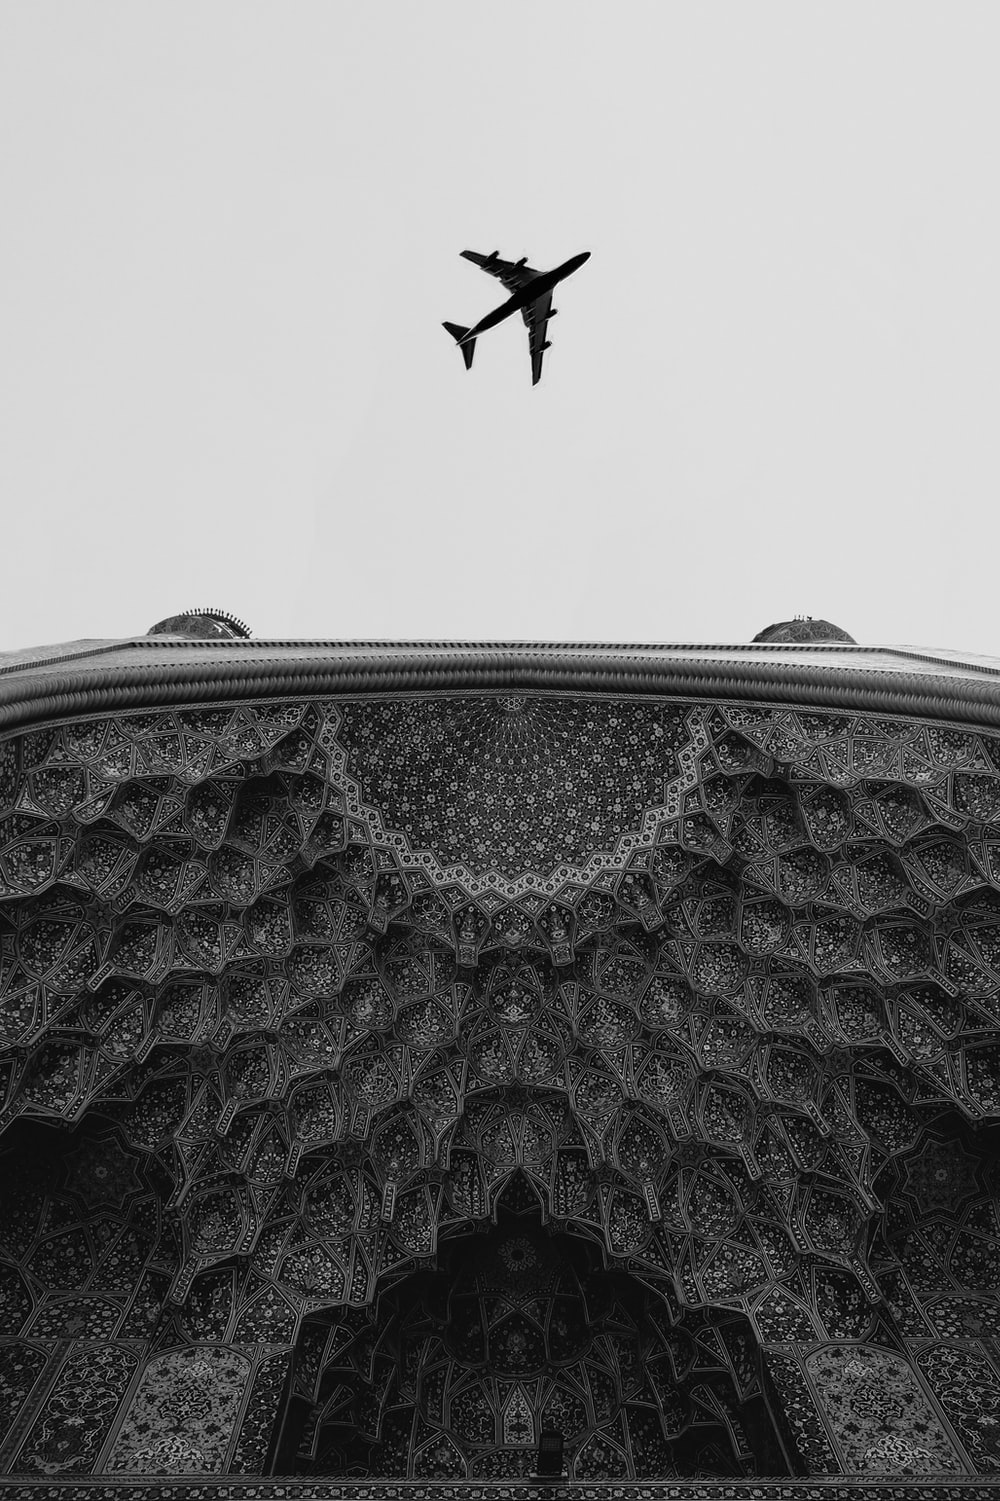 grayscale photography of flying plane during daytime